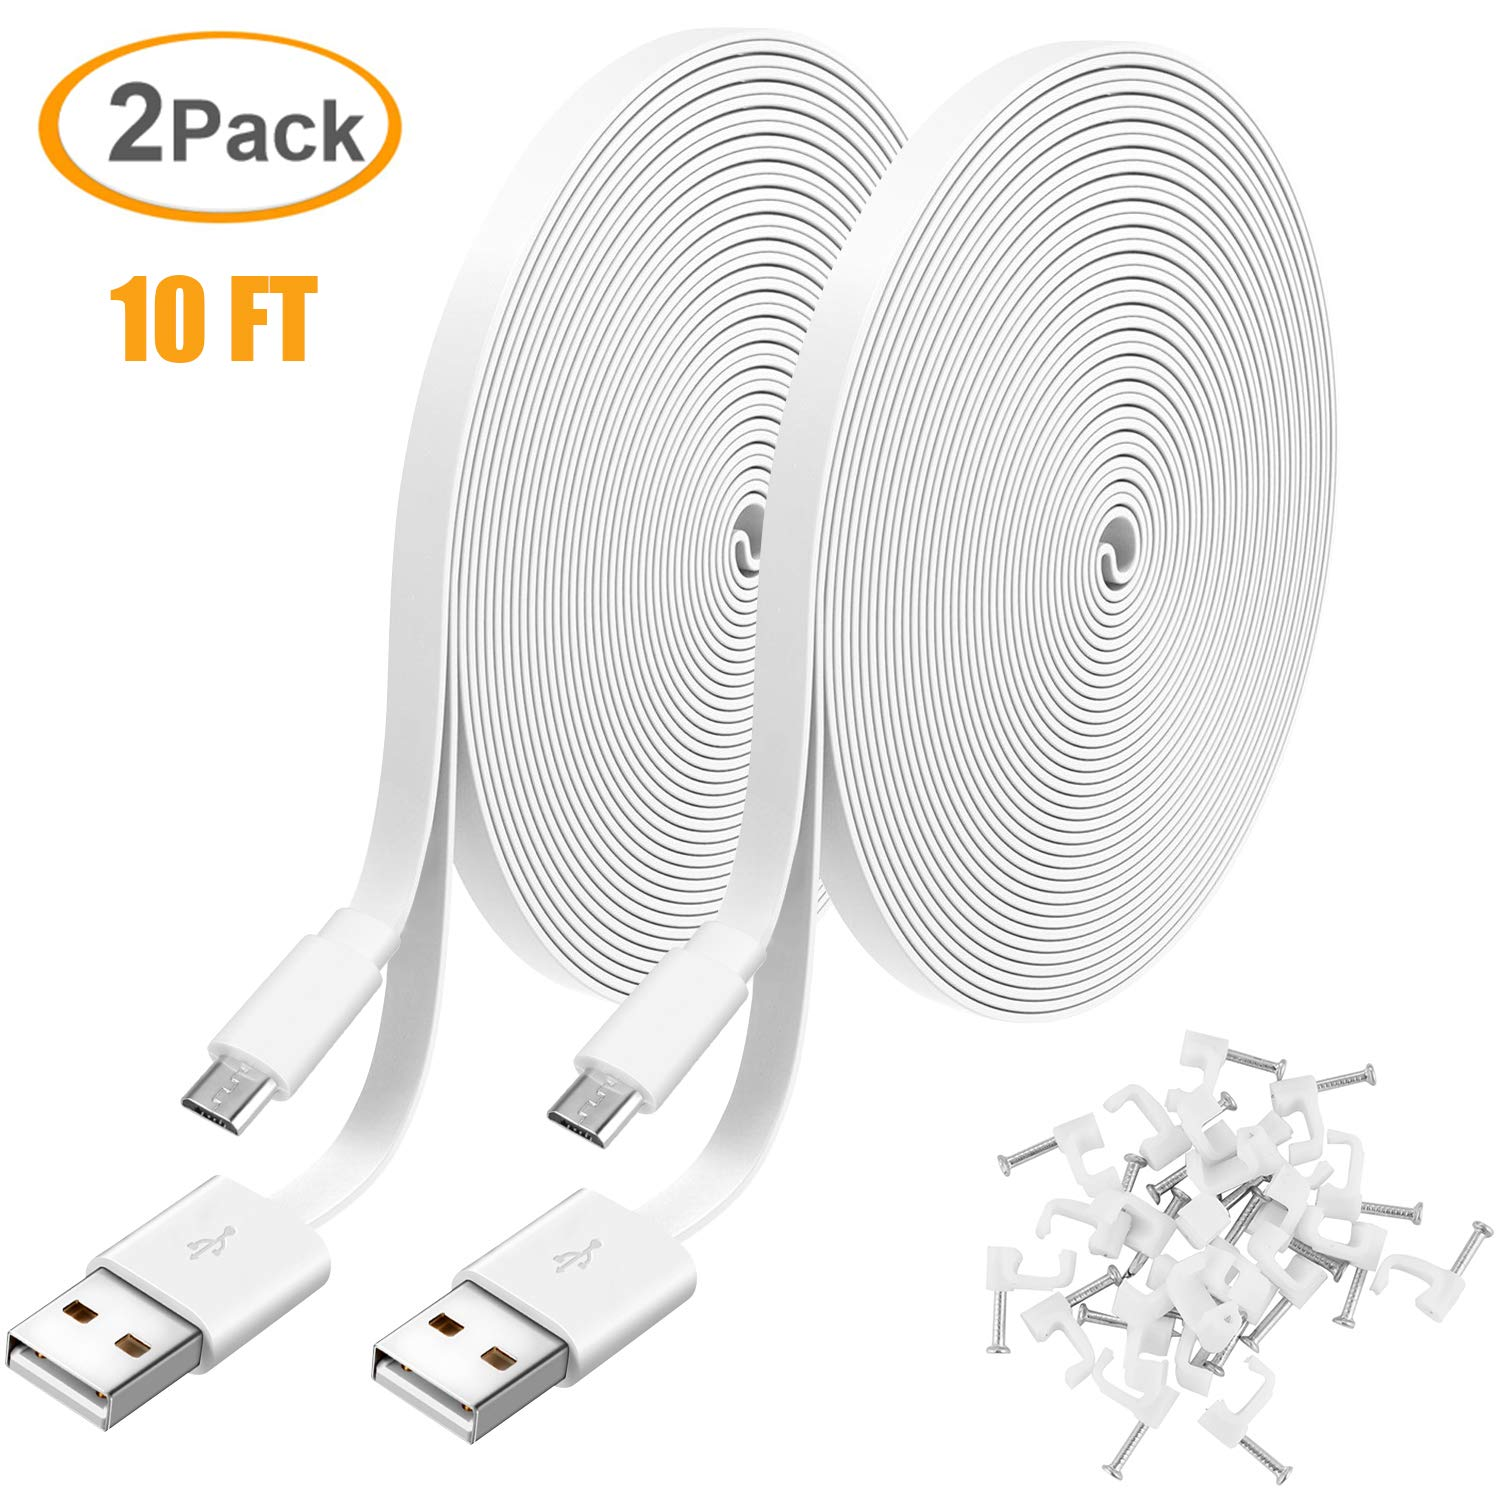 2 Pack 10FT Power Extension Cable for WyzeCam, WyzeCam Pan, KasaCam Indoor, NestCam Indoor, Yi Camera, Blink, Amazon Cloud Cam, USB to Micro USB Durable Charging and Data Sync Cord for Security Camera 71ripRRhv8L